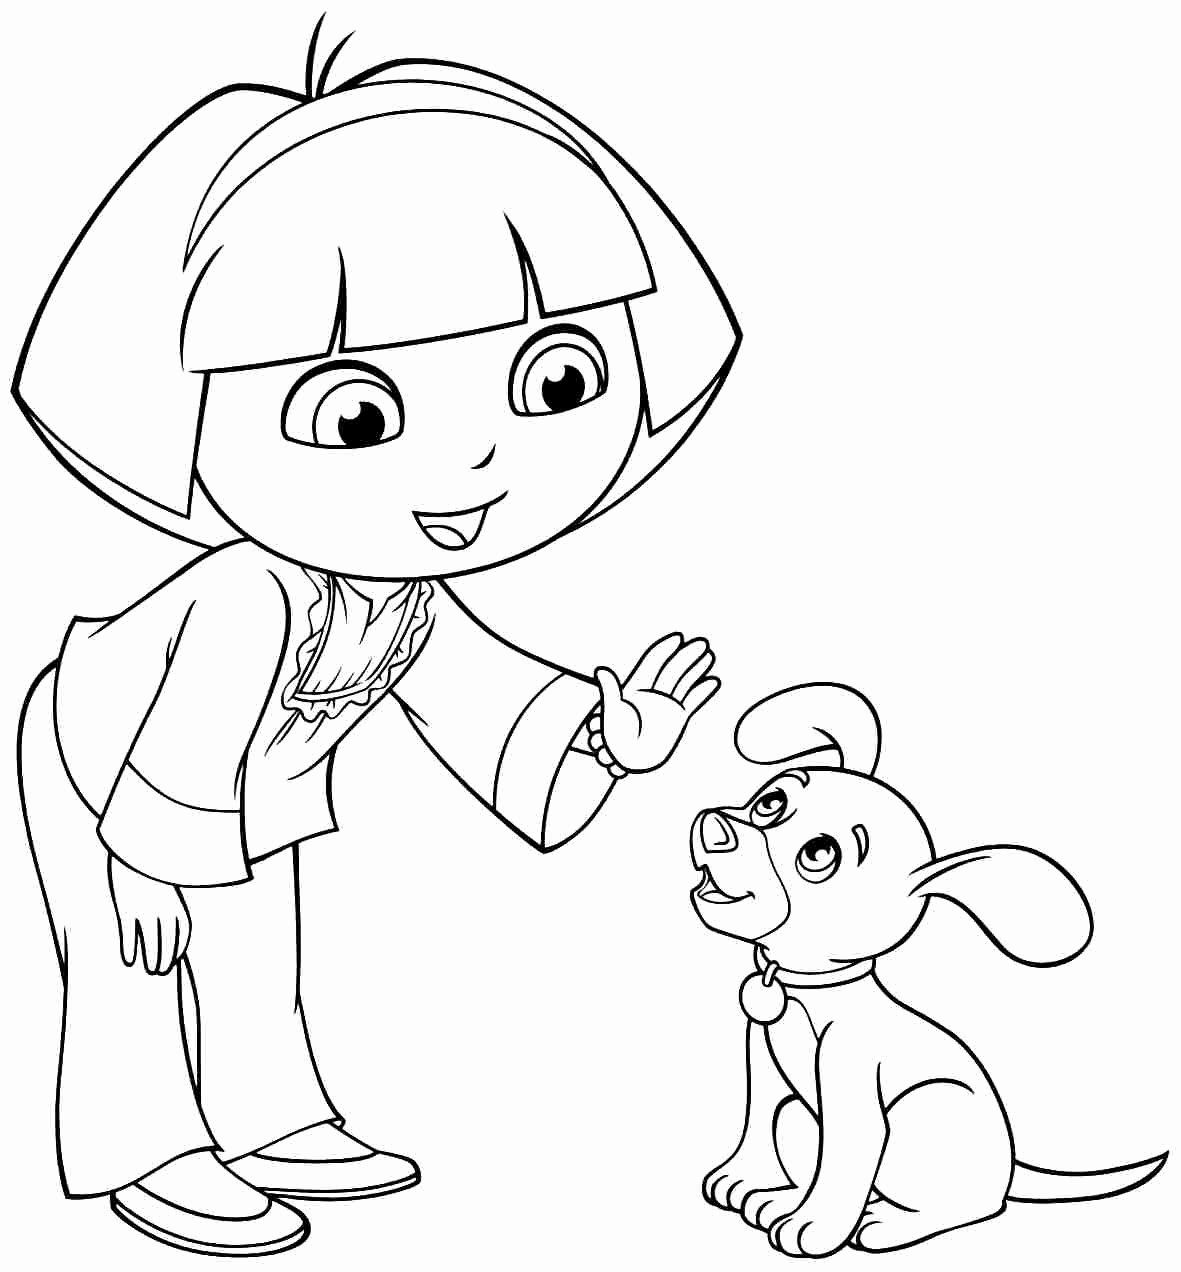 Dora Printable Coloring Pages Fresh Dora Coloring Pages Dora Coloring Puppy Coloring Pages Cartoon Coloring Pages